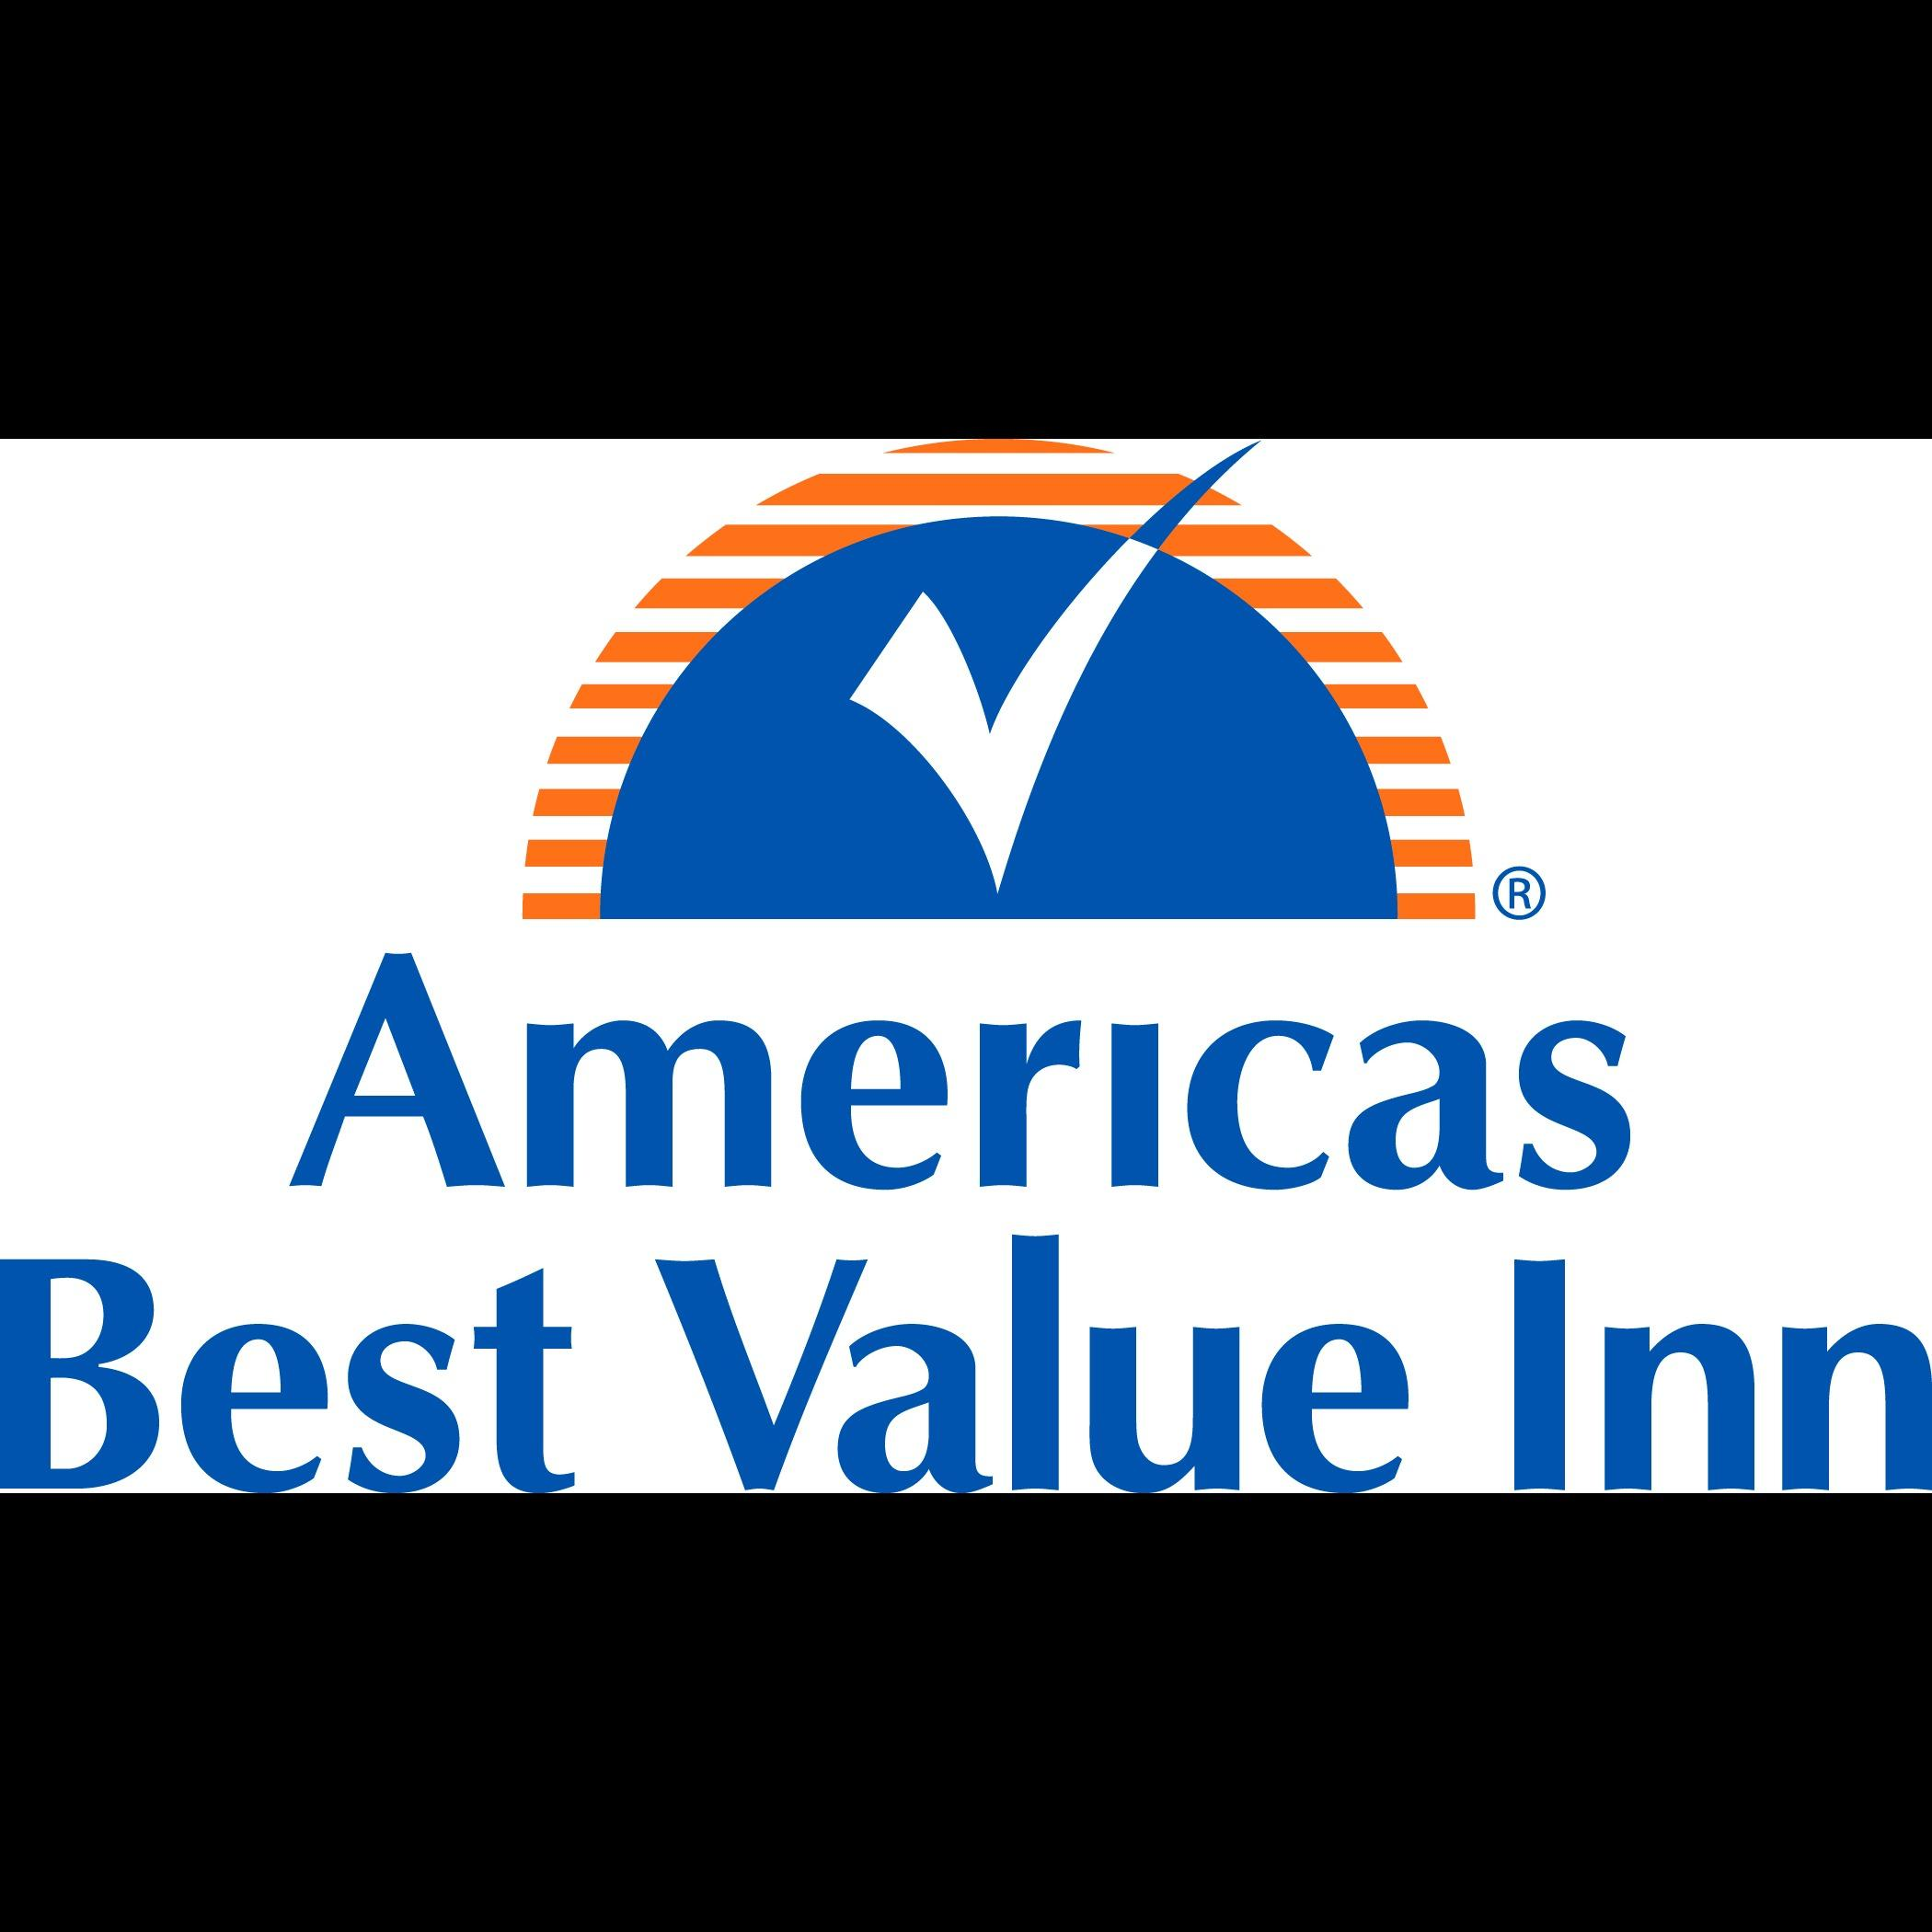 Americas Best Value Inn - Greeley/Evans